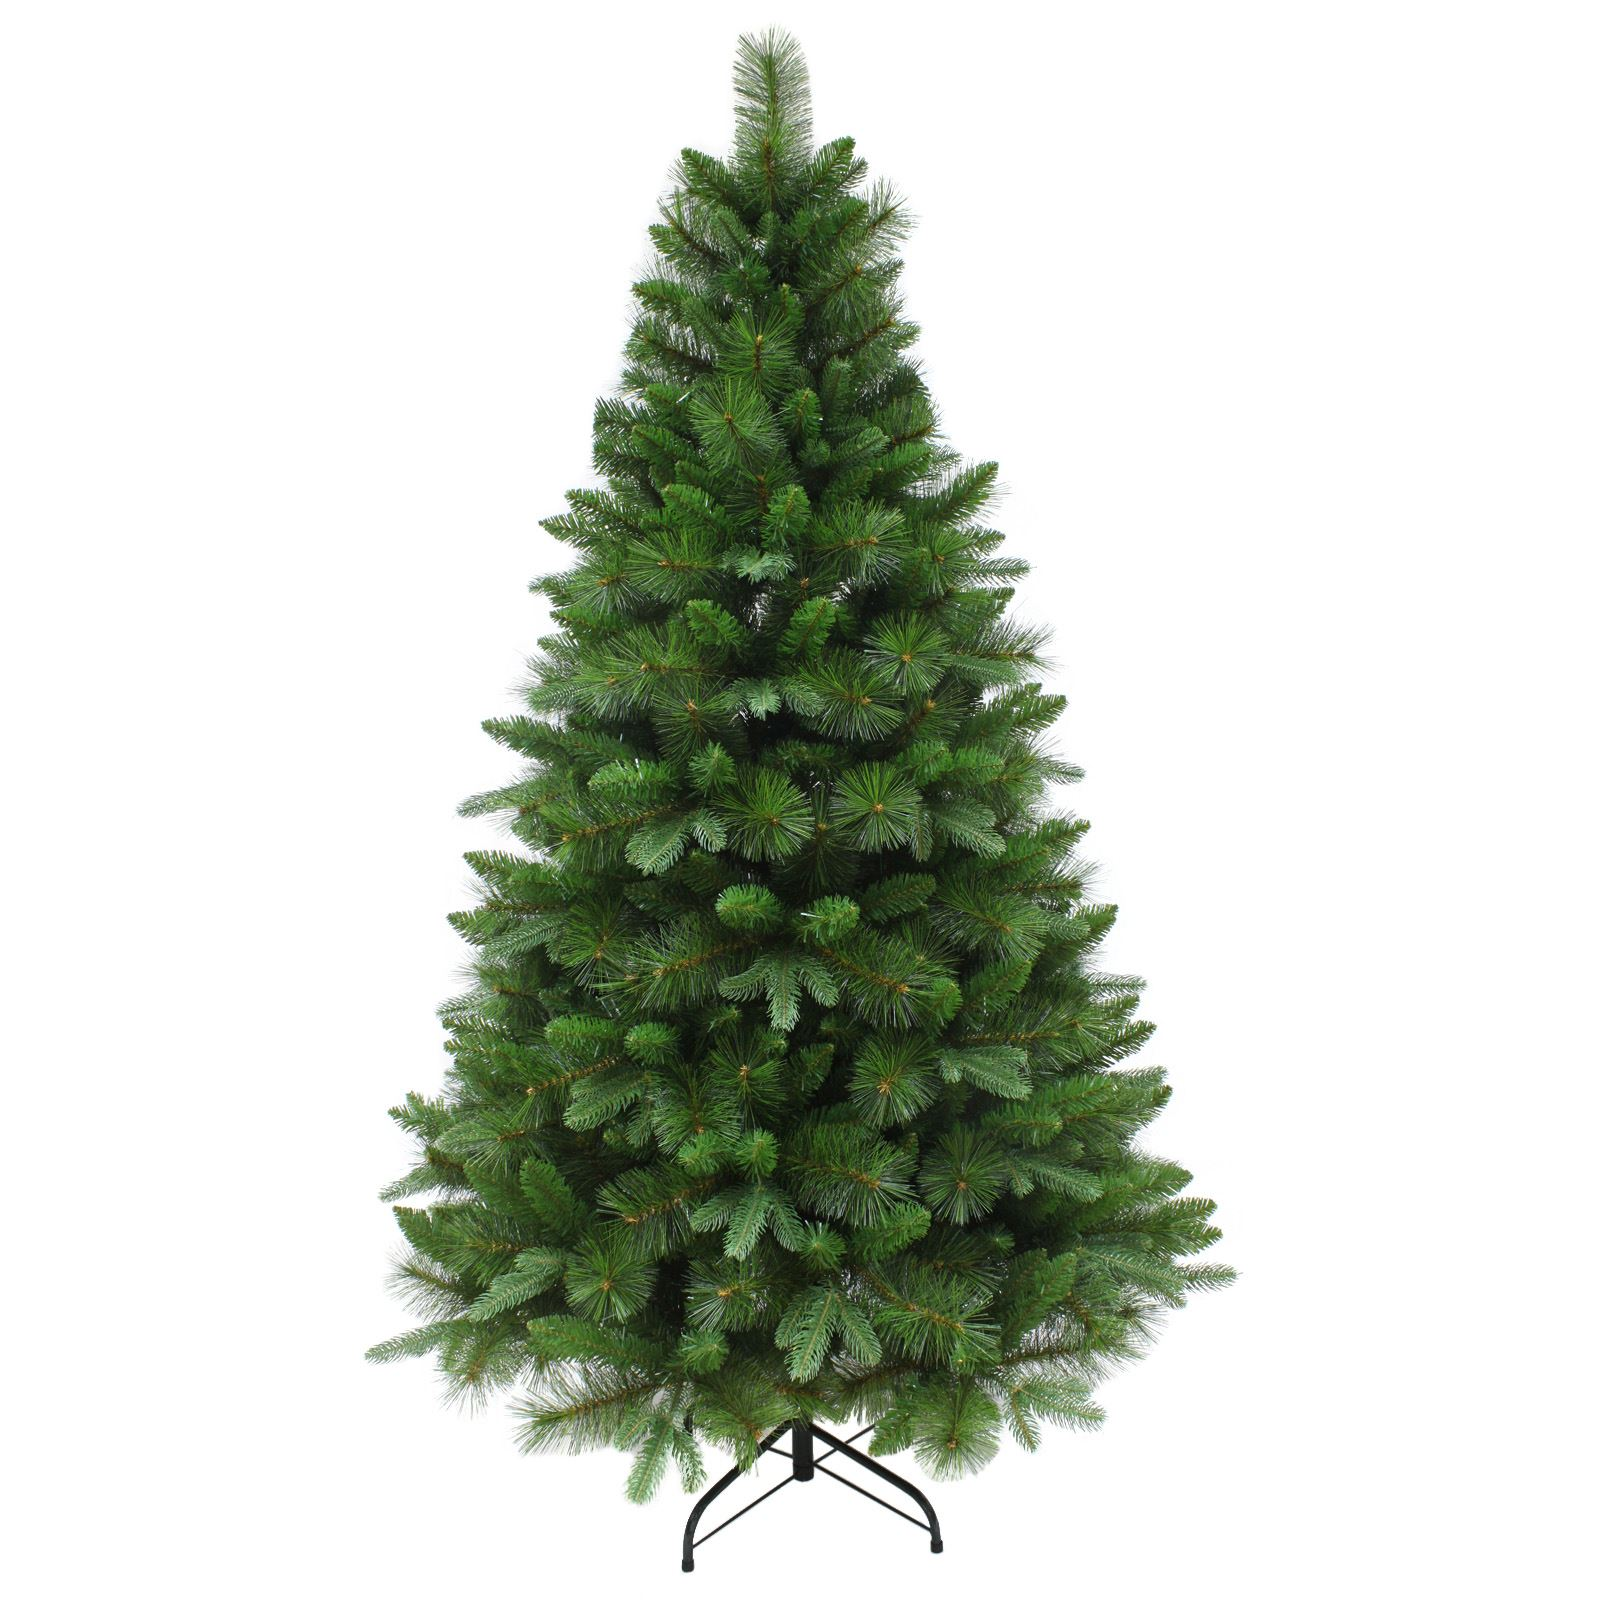 Gorgeous Luxury Snow Frosted Mixed Pine Artificial Christmas Tree 6ft or 7ft